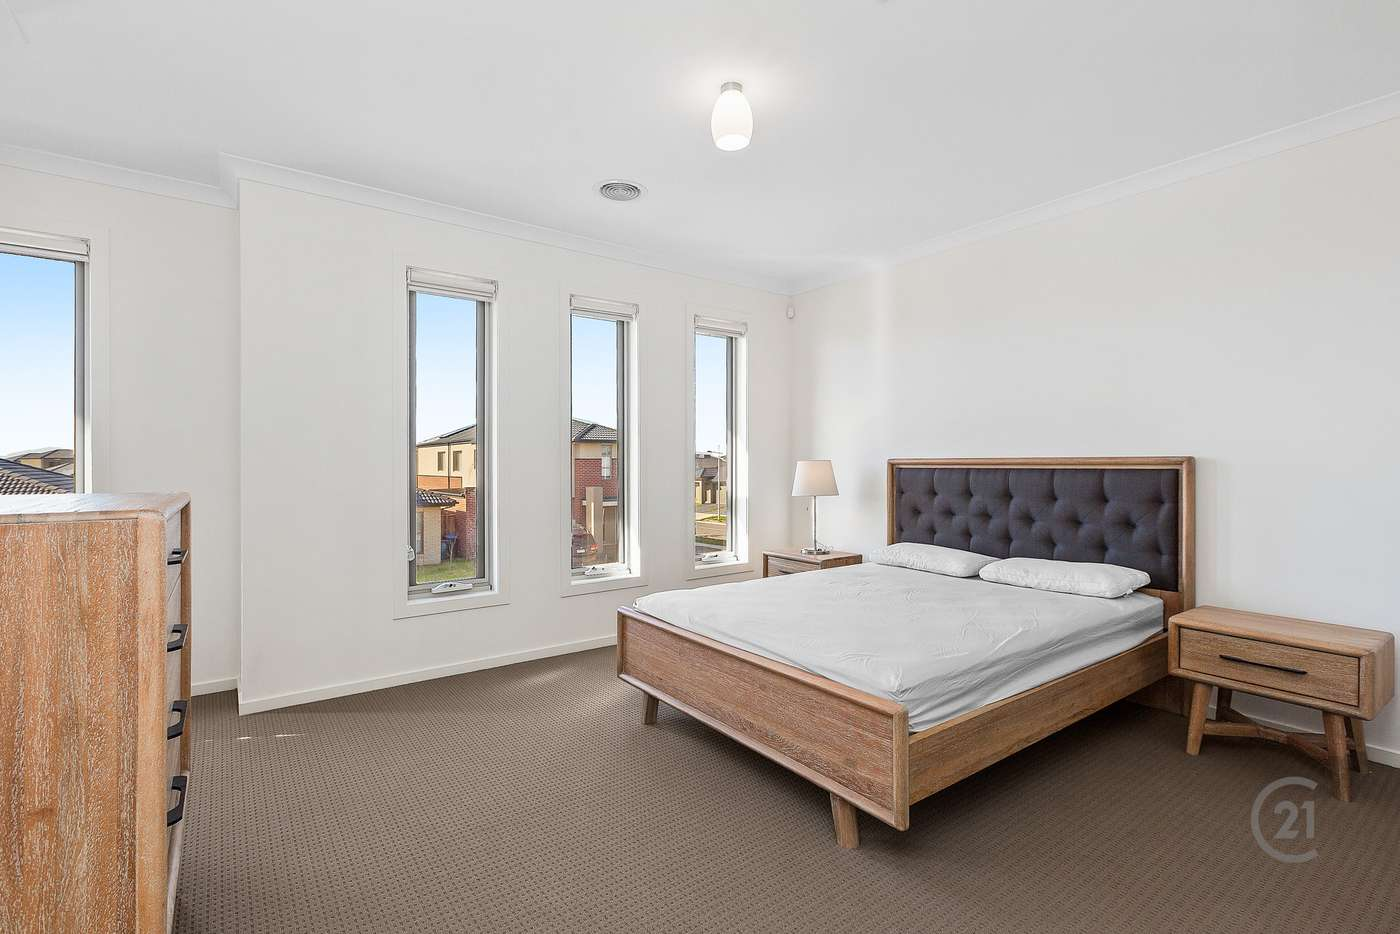 Seventh view of Homely house listing, 6 Hutchence Drive, Point Cook VIC 3030